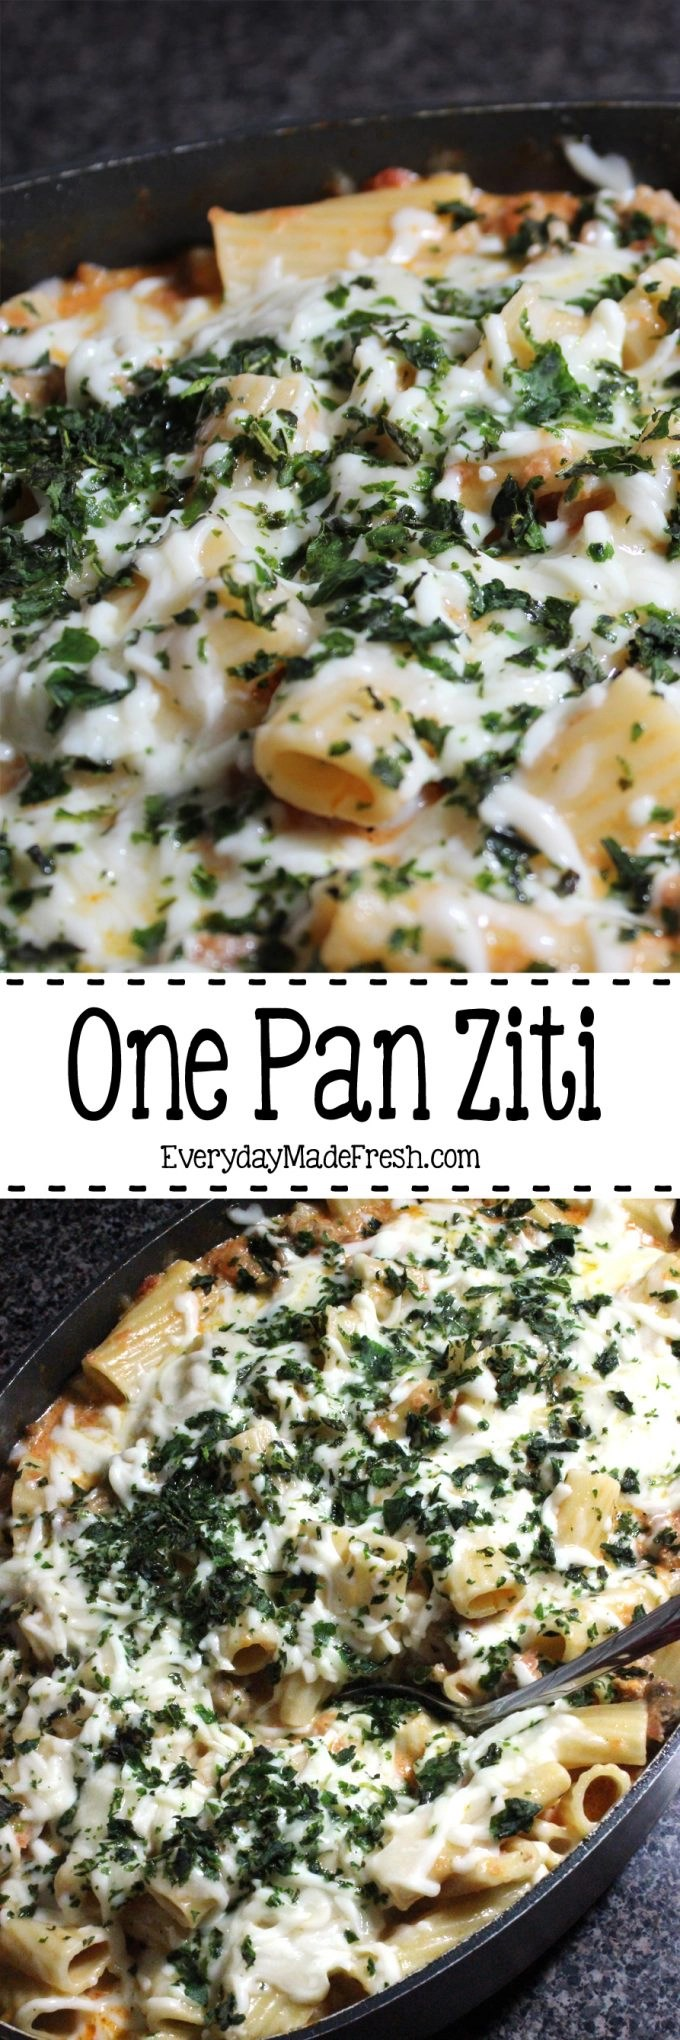 This One Pan Ziti is so tasty and so easy to make. It's one of our favorites! | EverydayMadeFresh.com